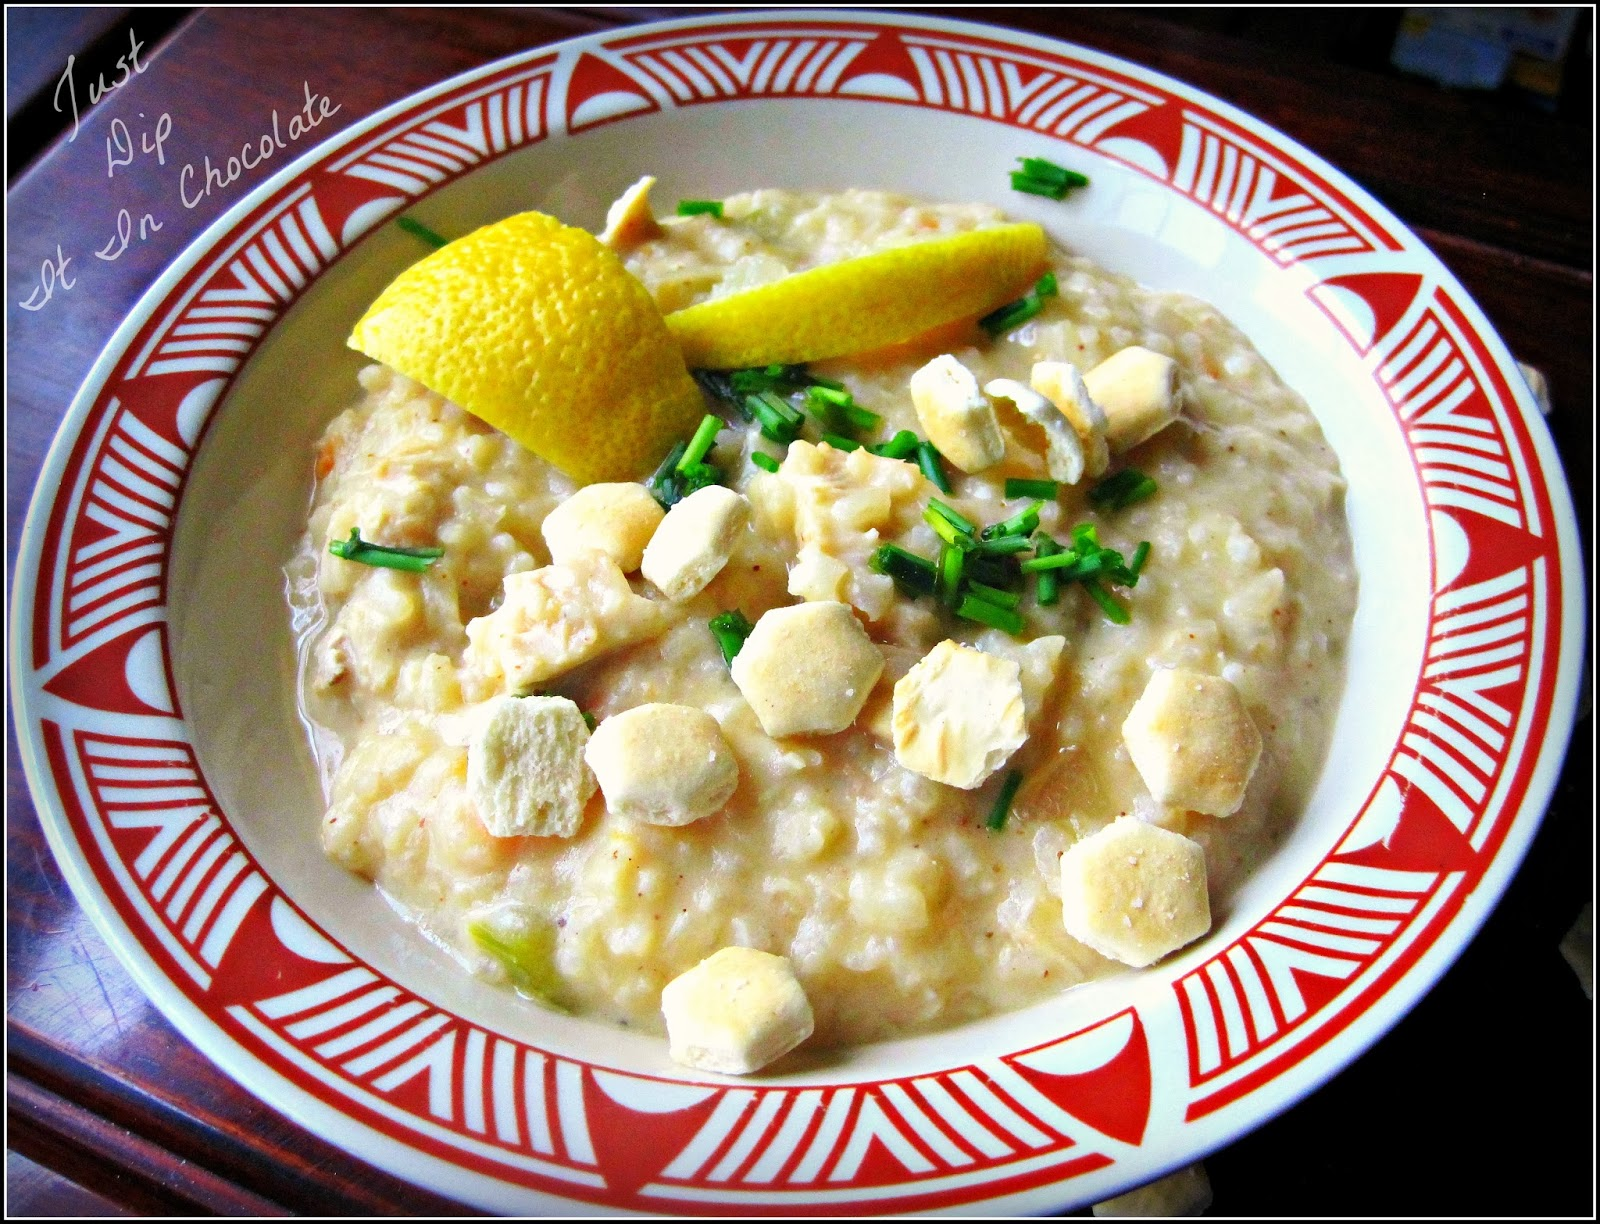 Avgolemono Lemon Rice and Chicken Soup Recipe Tangy Lemon, Creamy Rice and Savory Chicken all in one delicious dish perfect for a snowy night family dinner! #avgolemono #chickensoup #soup #lemon #rice